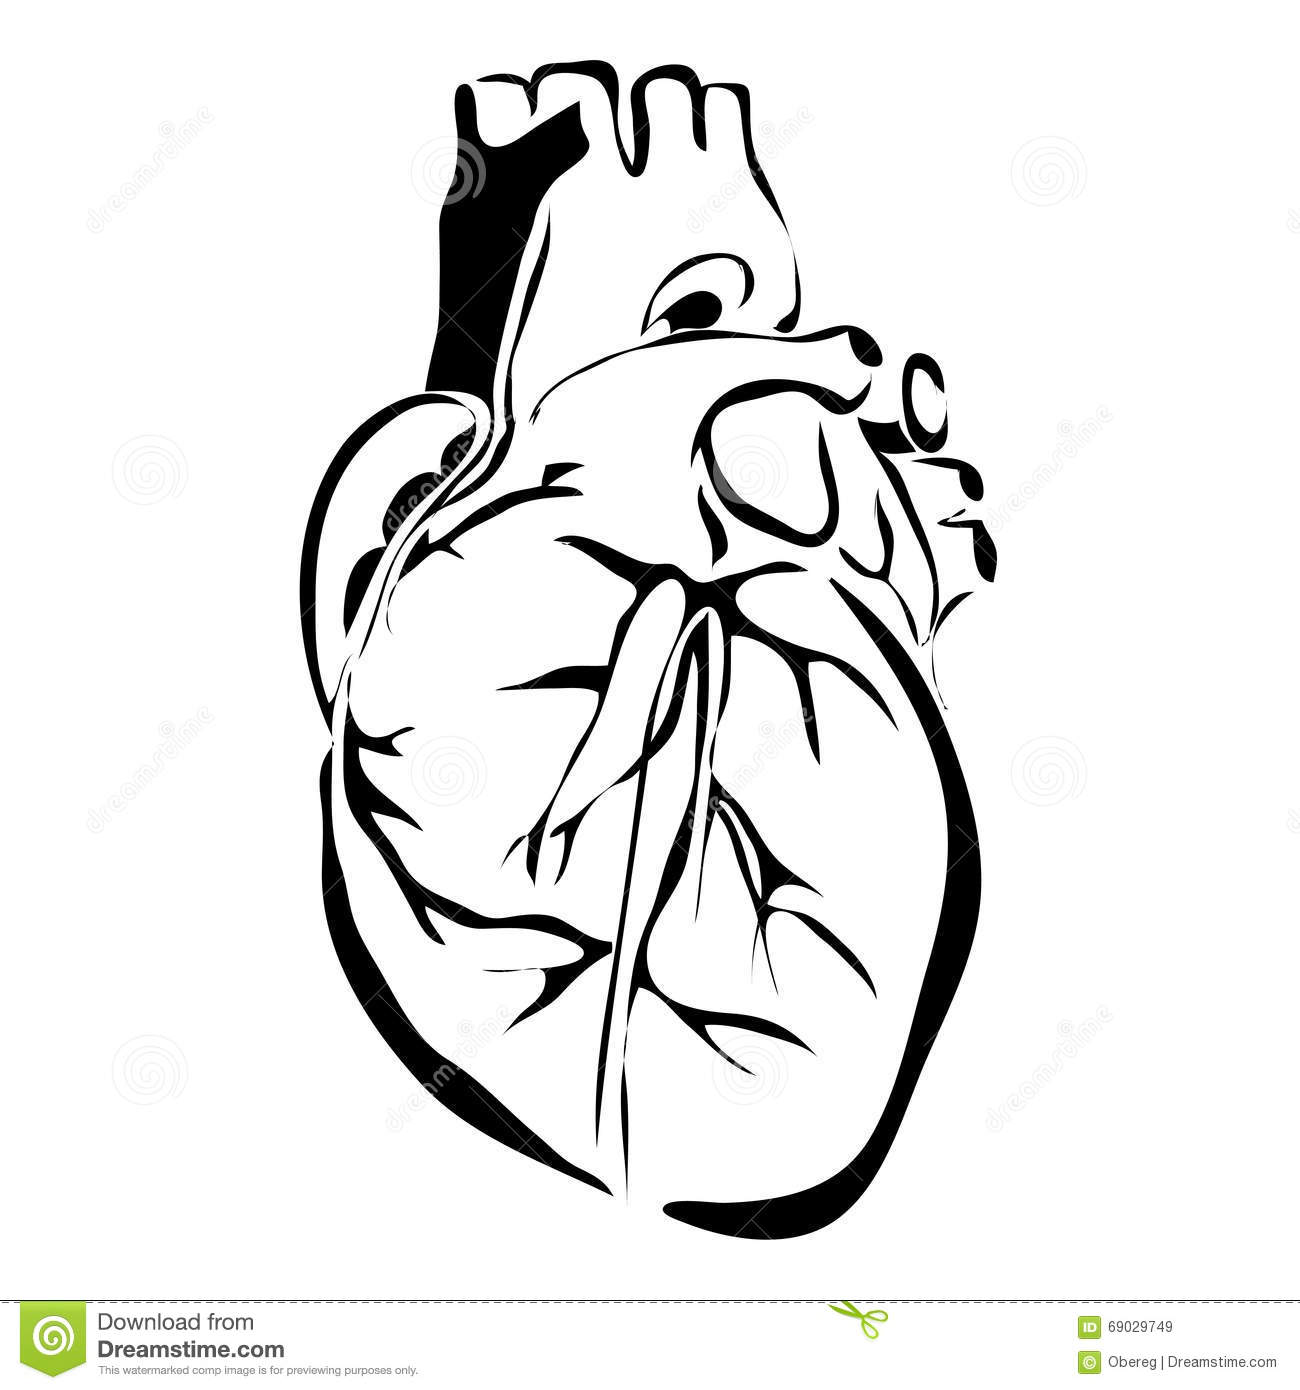 Human Heart Clipart Black And White